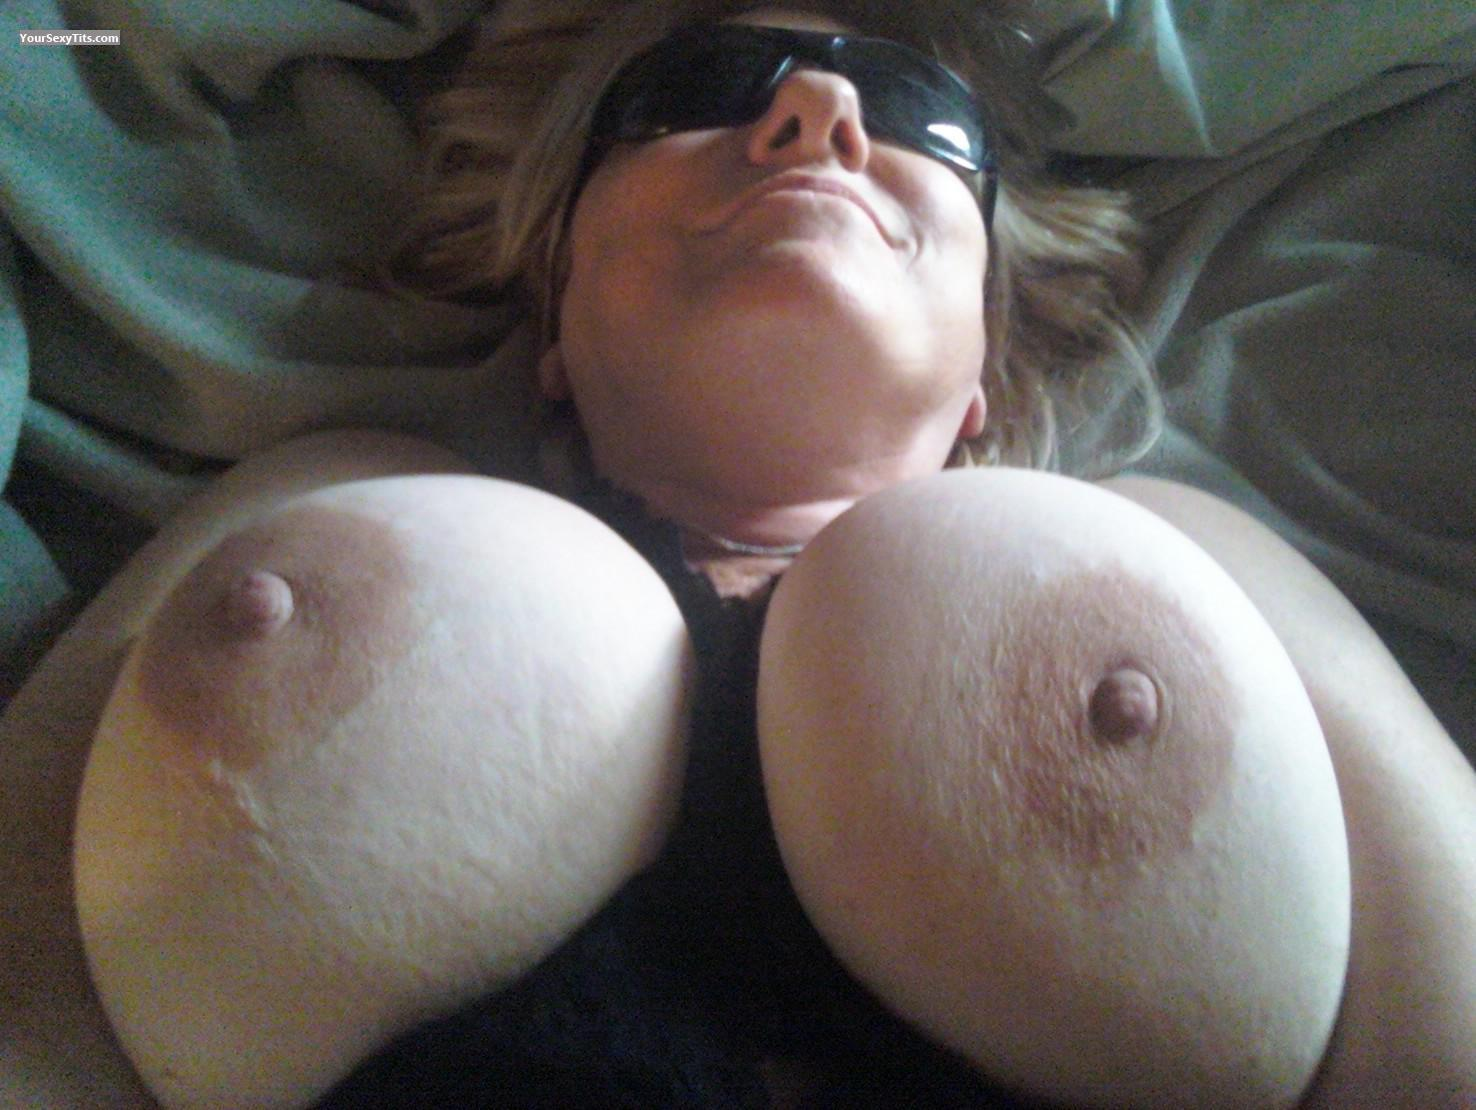 Tit Flash: Very Big Tits - Pablo's from United States